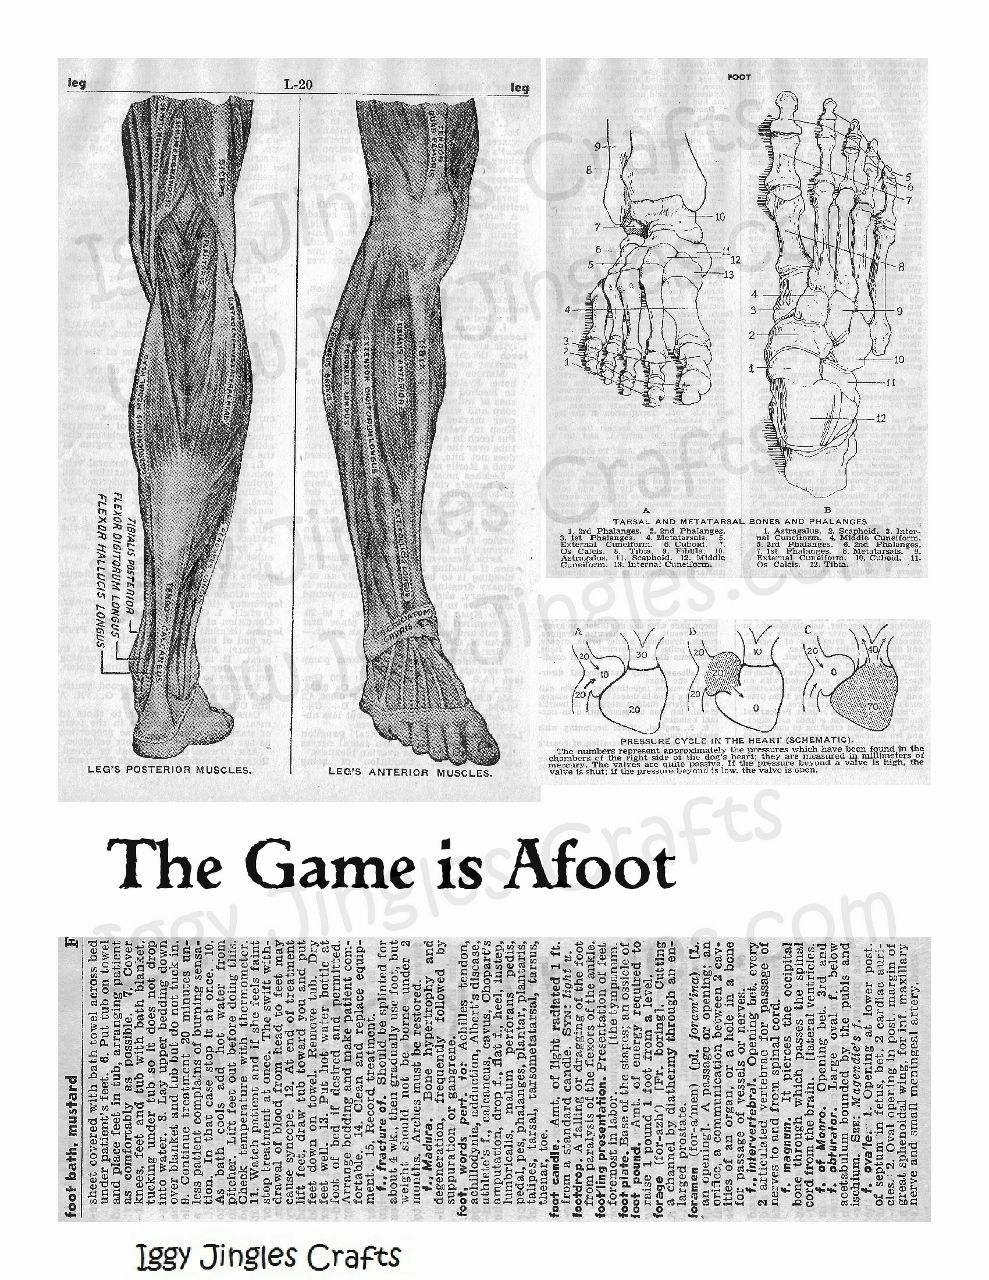 Game is Afoot Vintage Image collage sheet in Black and White